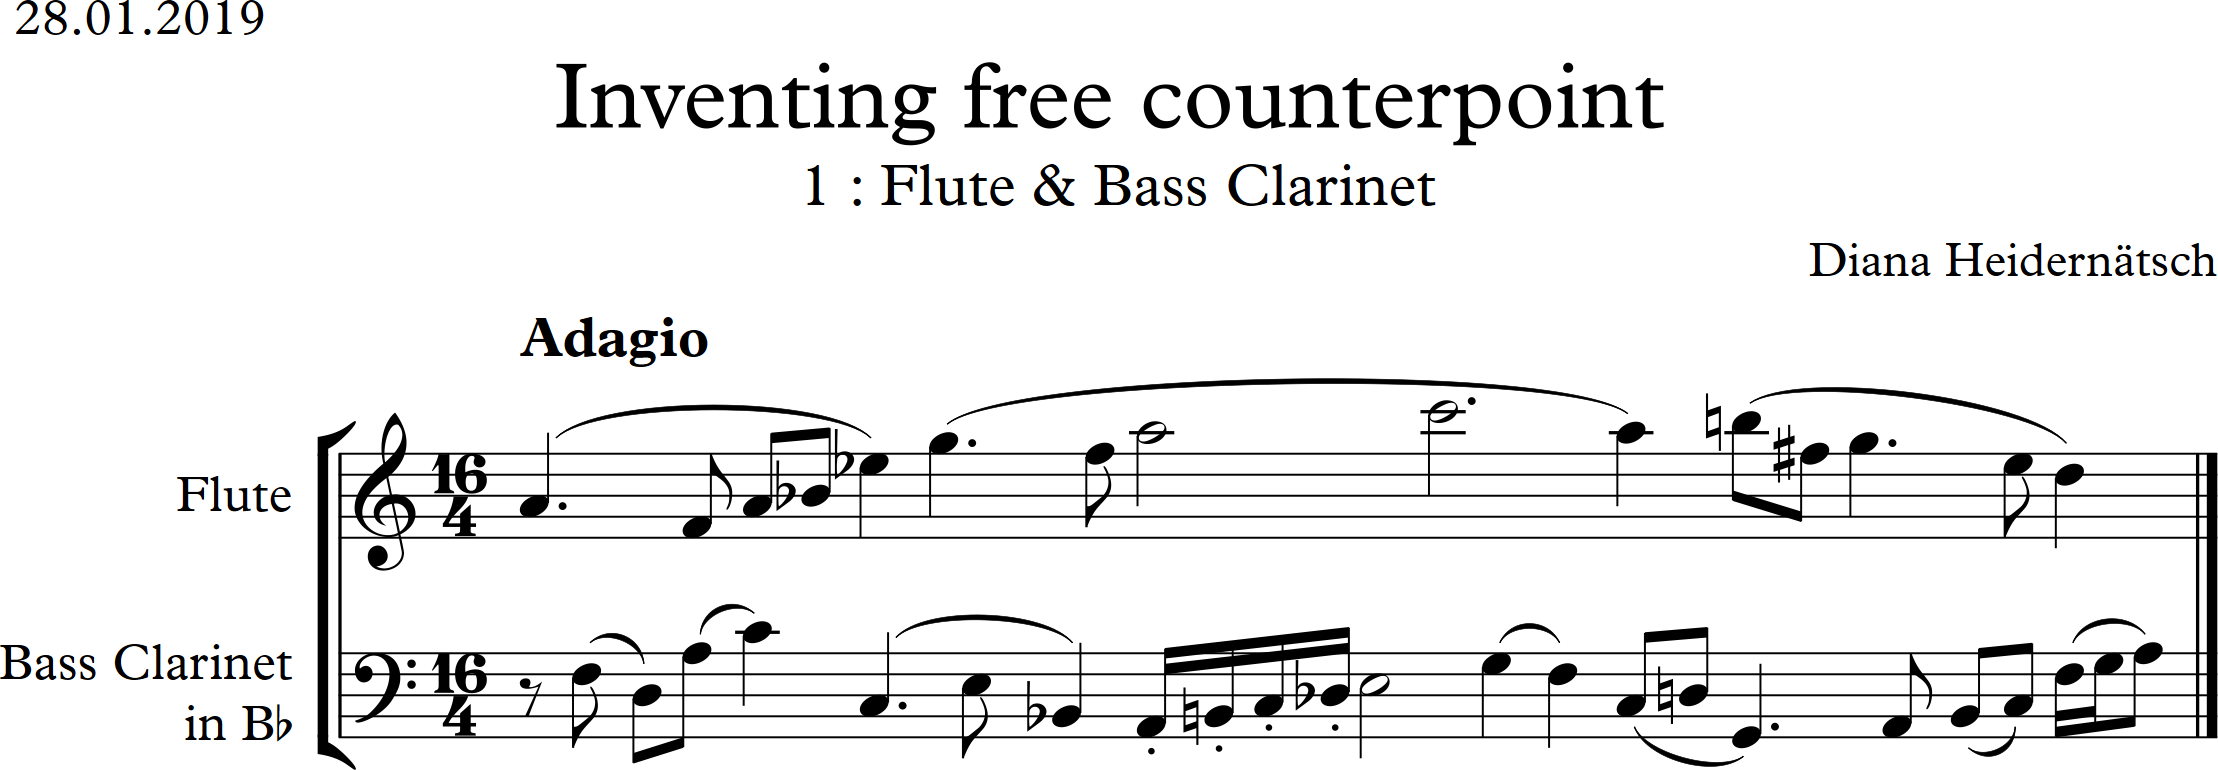 Project 11 : Inventing free counterpoint – Dianas Learning Log